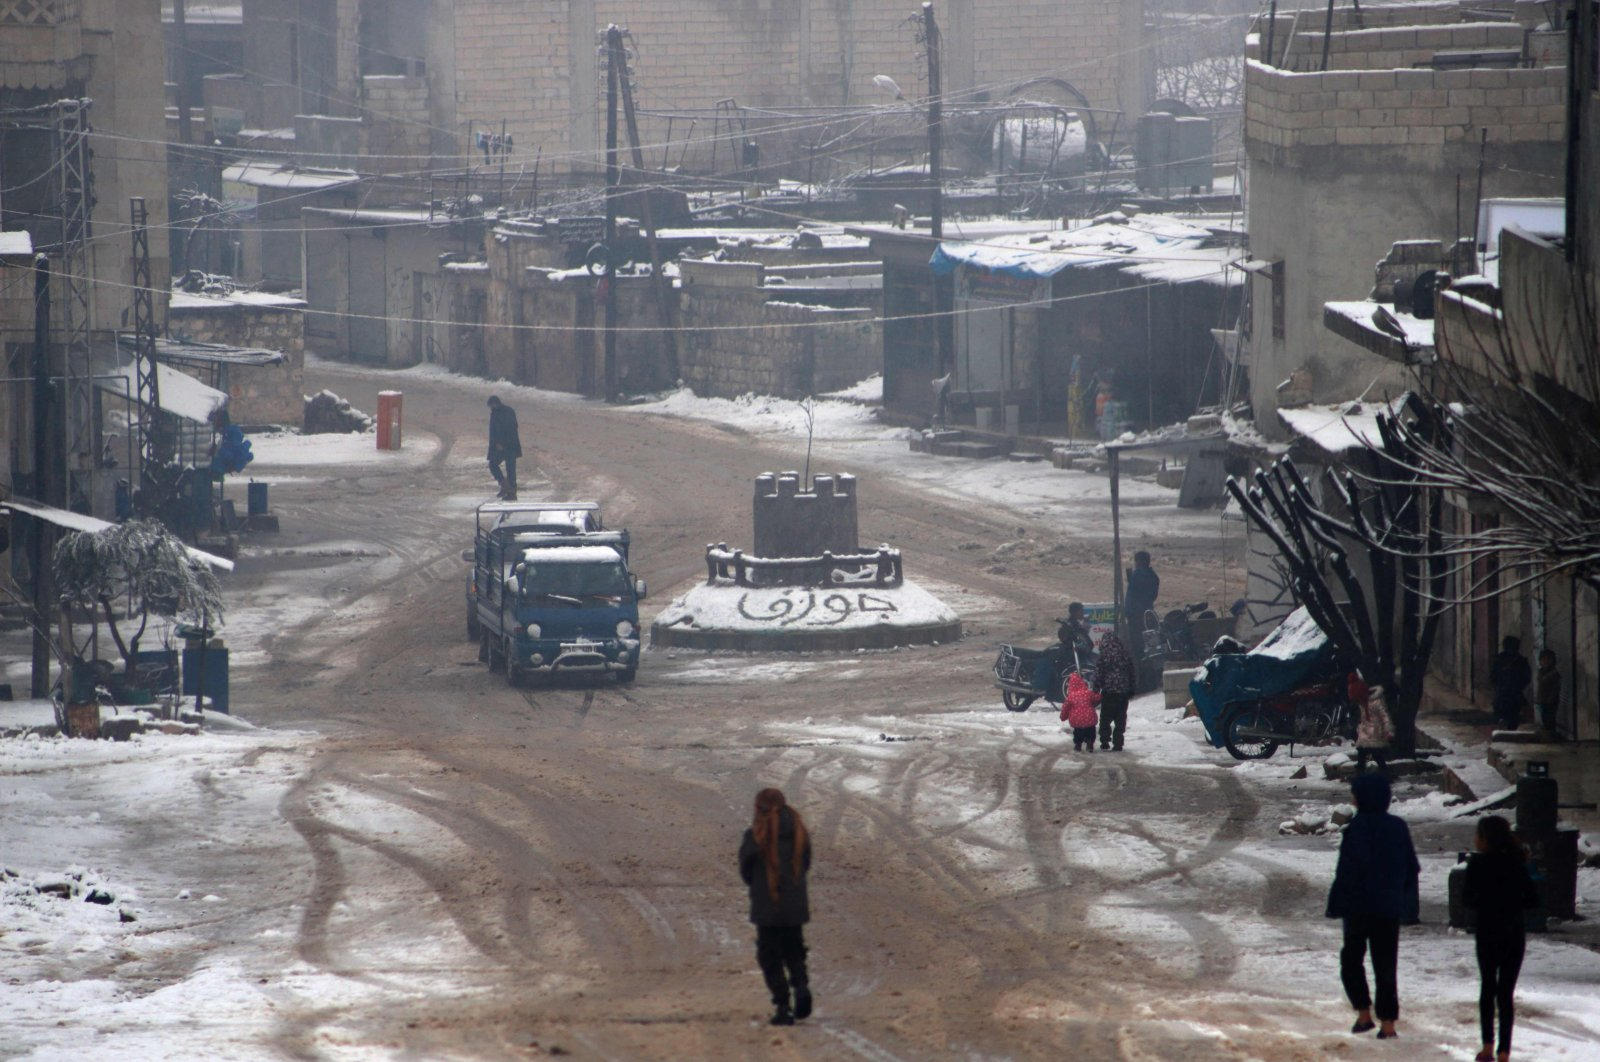 Snow covers a roundabout, with the town's name in Arabic drawn in the snow, as people walk in the town of Juzif on Zawiya Mountain of Syria's opposition-held Idlib province, Feb. 17, 2021. (AFP Photo)